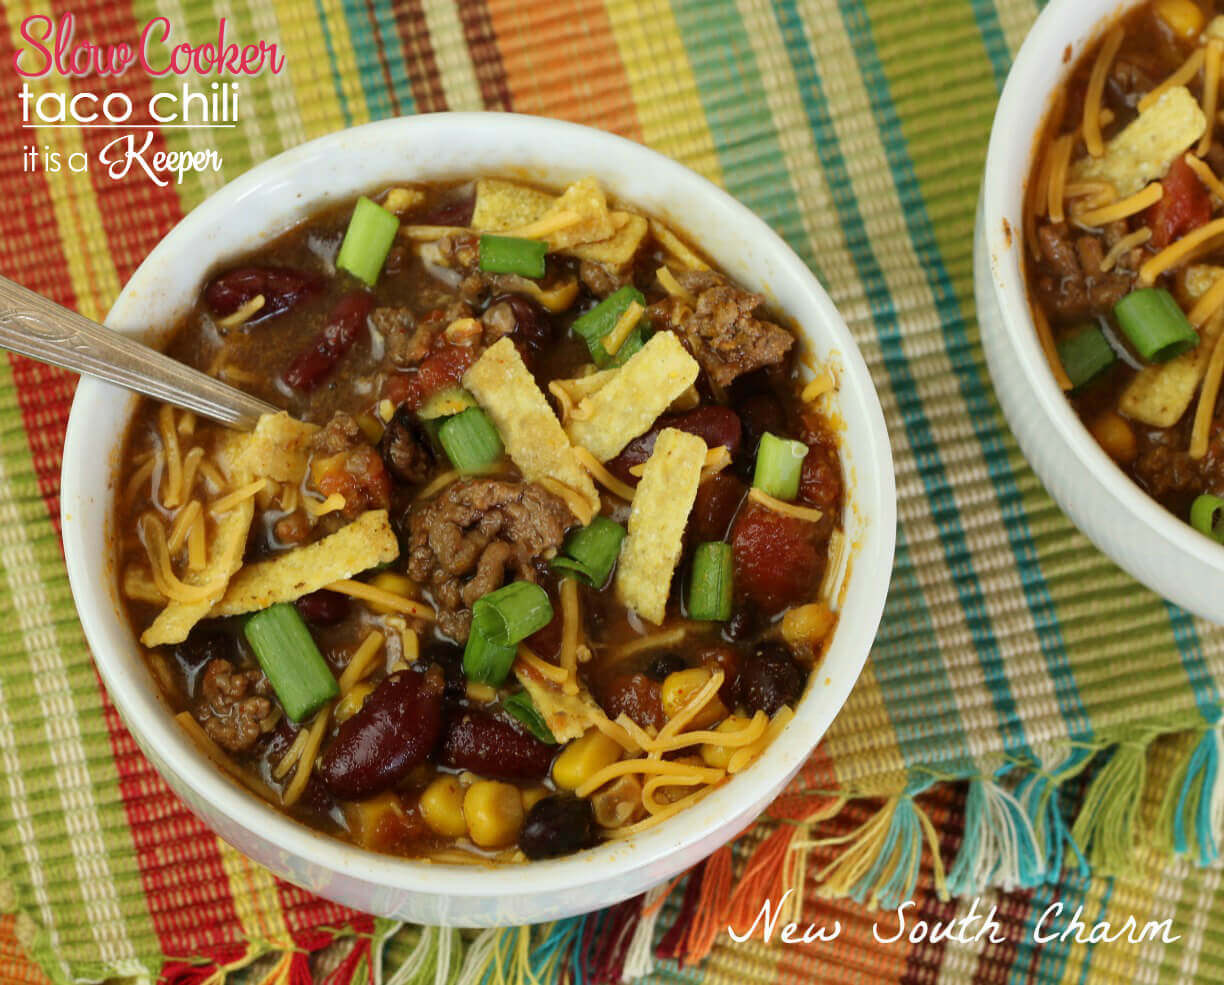 This easy Slow Cooker Taco Chili is perfect for chilly days. It will quickly become one of your favorite easy crock pot recipes because its definitely one of the best slow cooker recipes of all time.